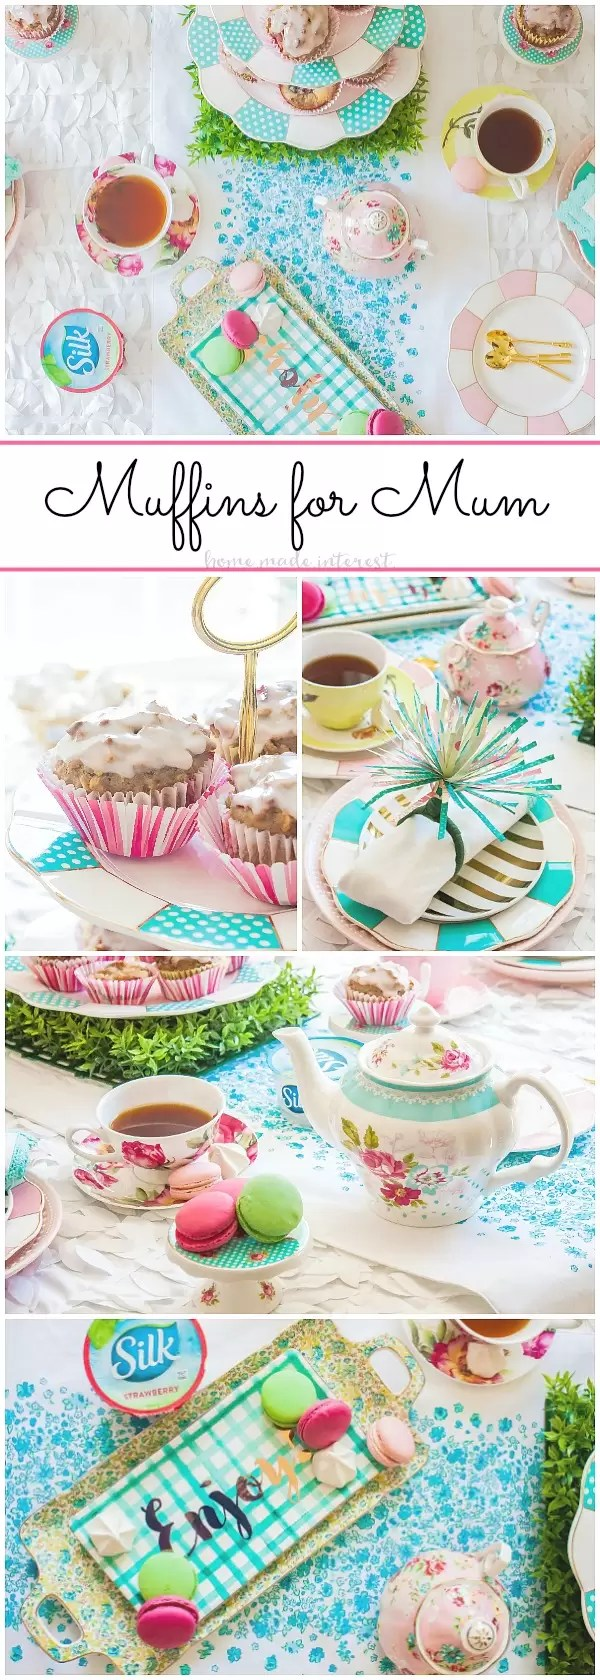 Muffins for Mum Mother's Day Brunch | Celebrate Mother's Day with a simple brunch including dairy free muffins for mom! These easy dairy free muffins were simple to make and they were delicious! This beautiful spring party idea is a tea party themed Mother's Day brunch. It is a fun way to thank your mom for everything she does. We've got an easy paper flor tutorial showing you how to turn paper into beautiful napkin rings!